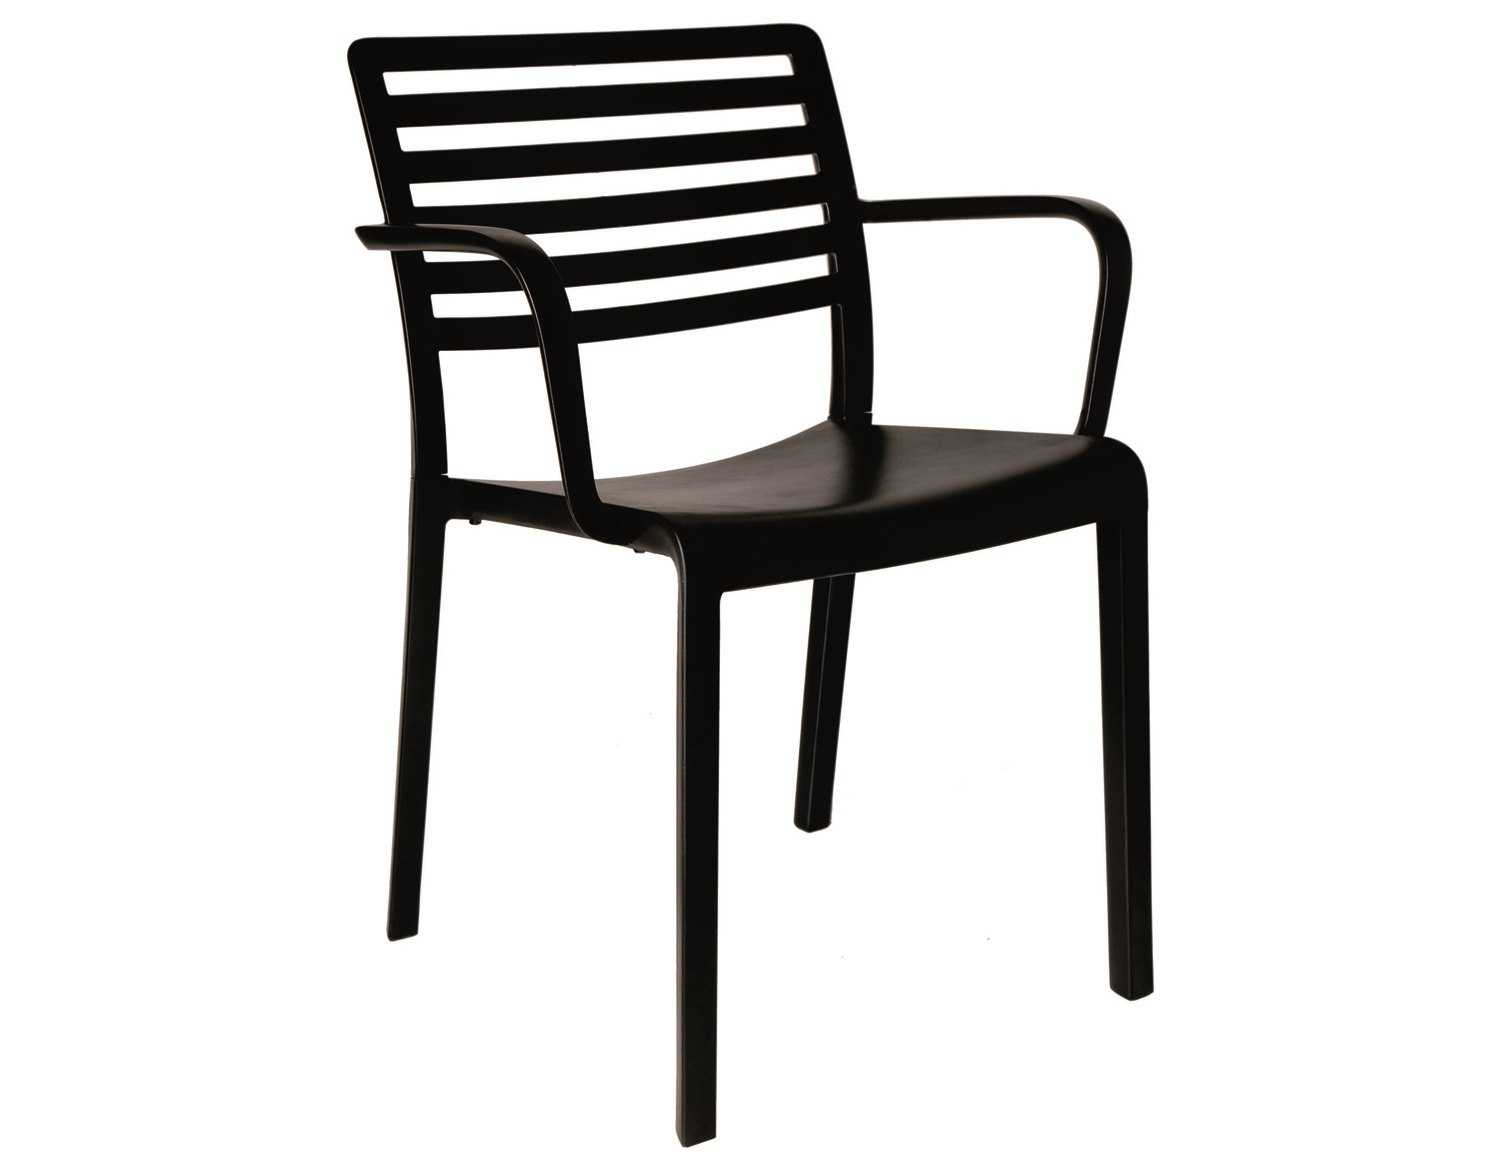 resol lama recycled plastic black arm chair  zoom